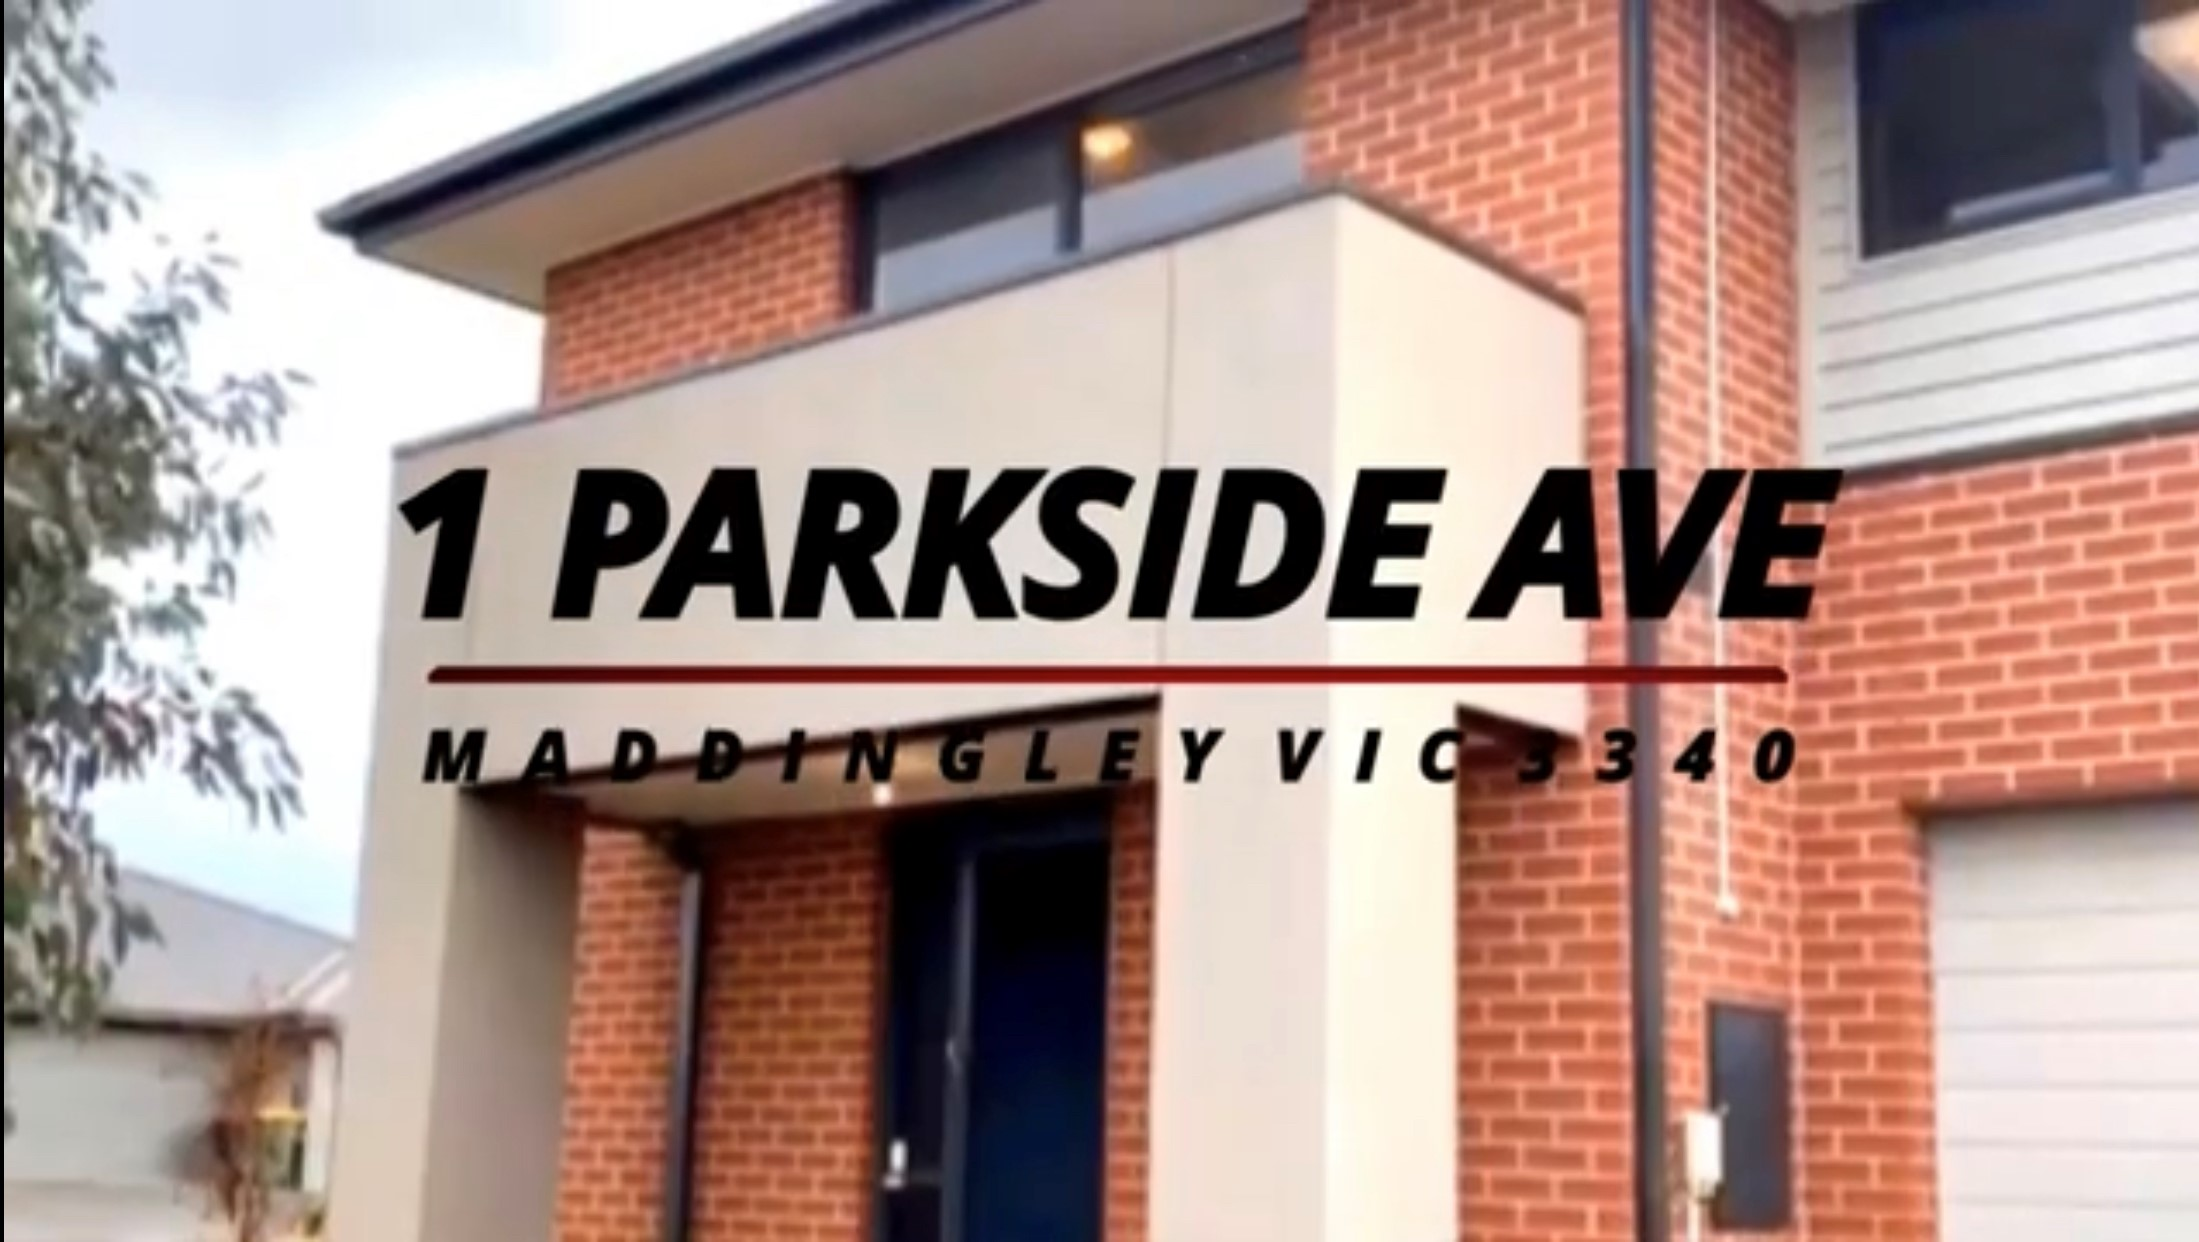 THE STORY BEHIND THE SALE OF 1 PARKSIDE AVE MADDINGLEY VIC